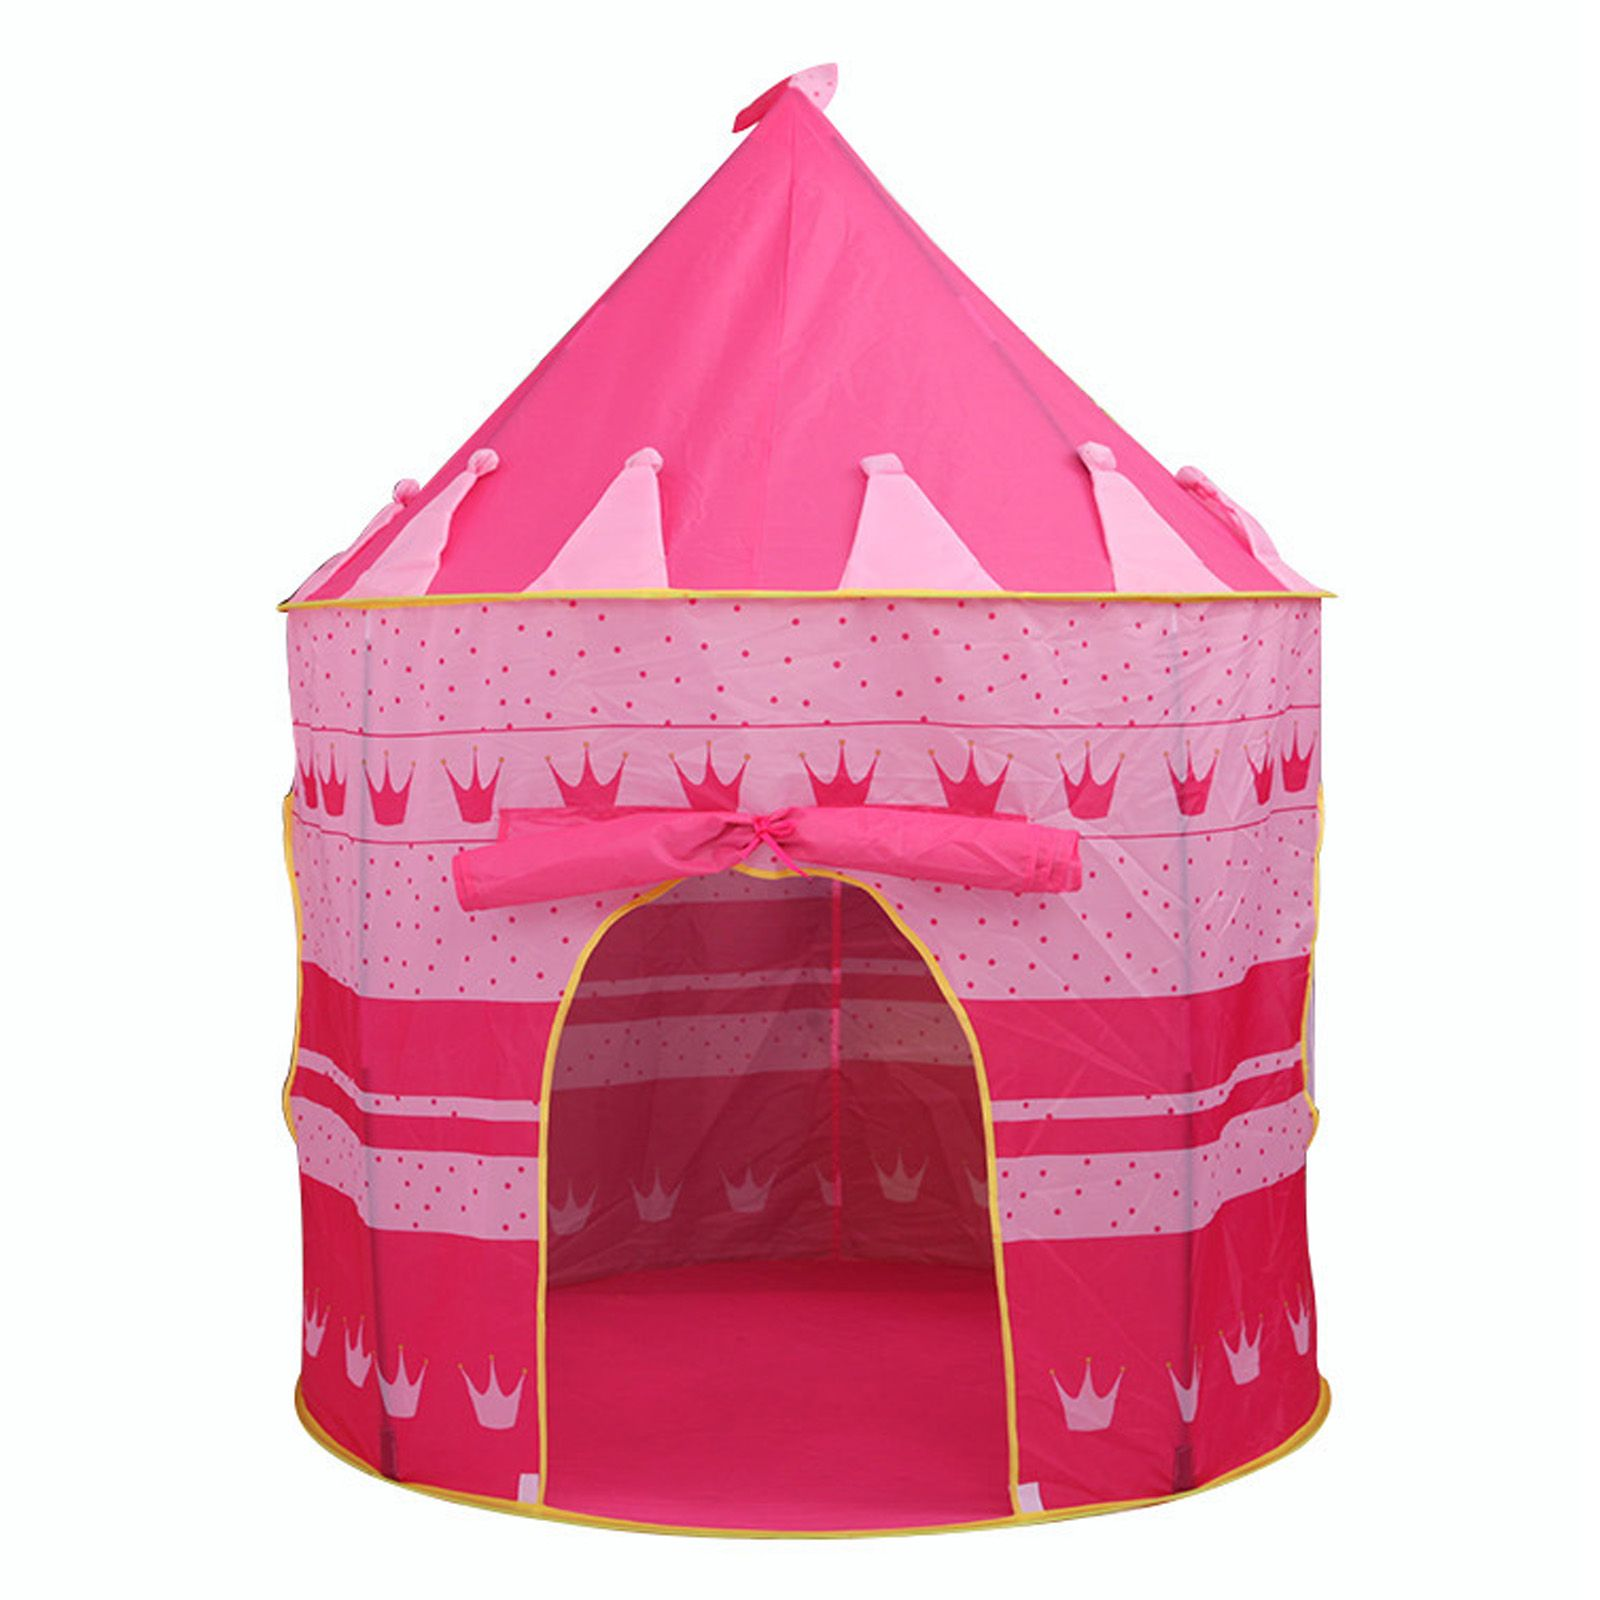 QWZ Foldable Play Tent Kids Children Boy Girl Castle Cubby Play House Bithday Christmas Gifts Outdoor Indoor Toy Tents Age Range u003e 3 years oldu003e 6 years  sc 1 st  Pinterest & pink princess castle play tent for girls | play tent | Pinterest ...